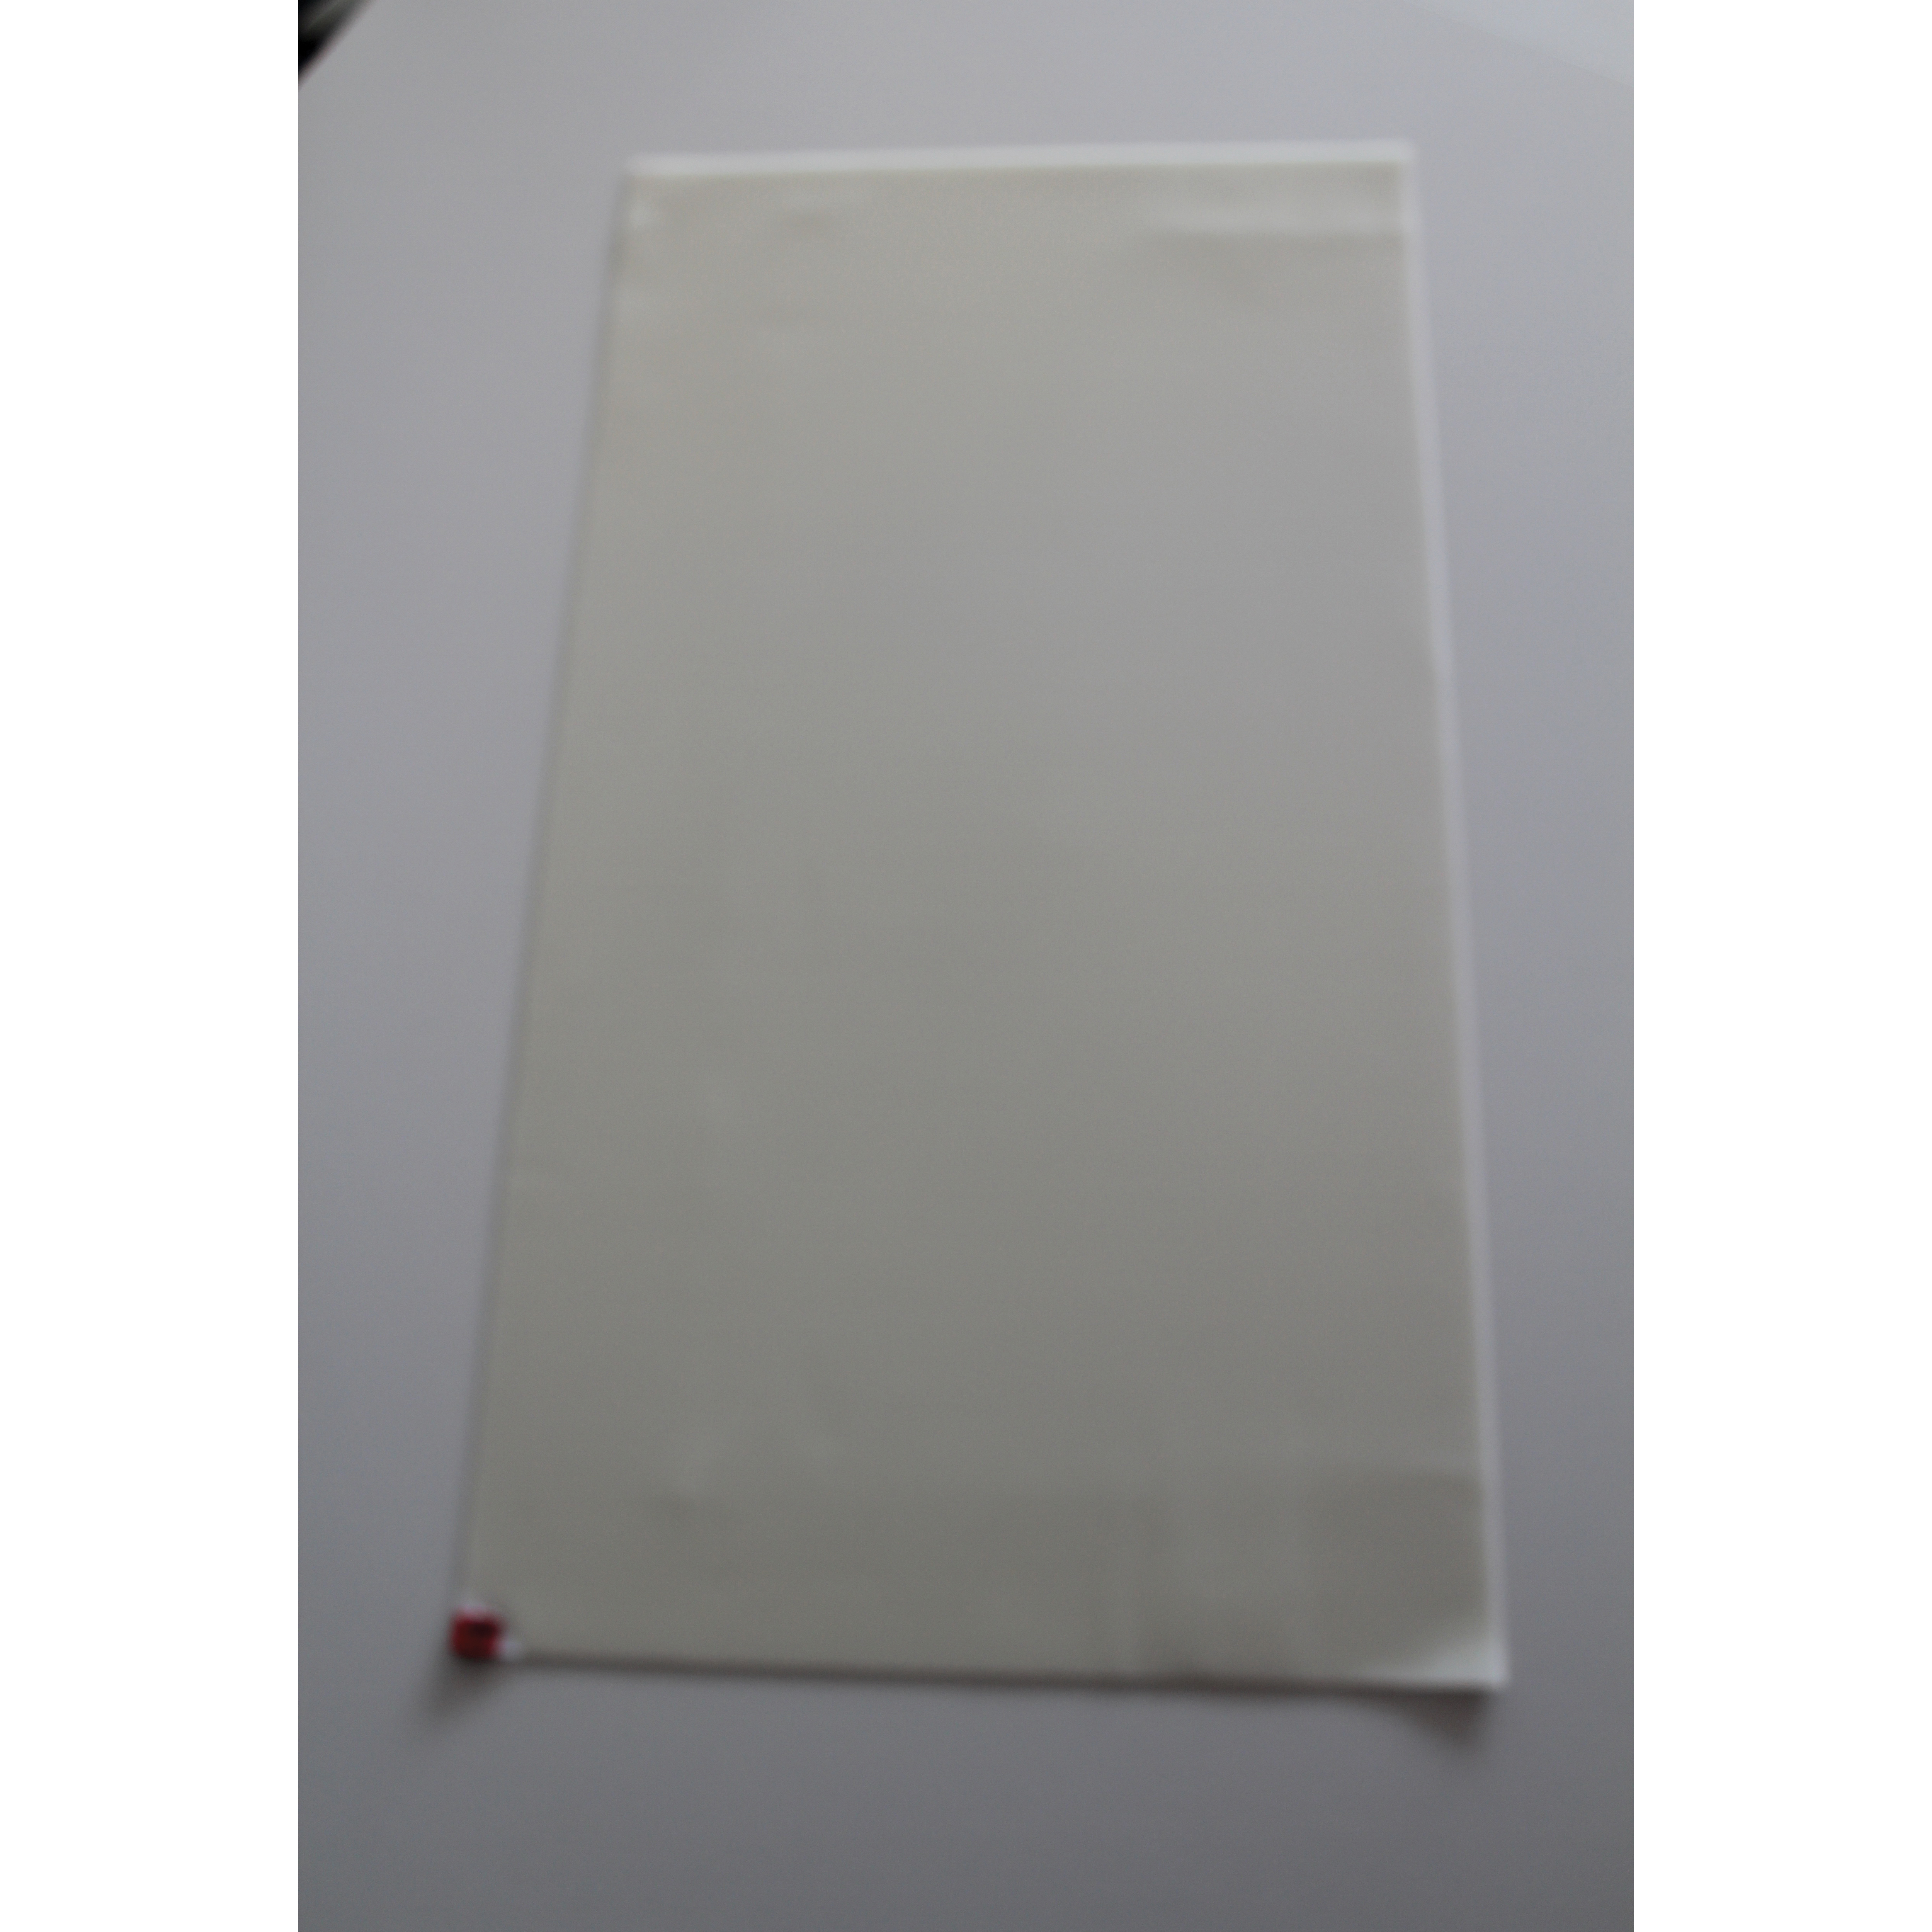 3M™ 021200-55724 5840 Backed Clean-Walk Framed Mat, 31-1/2 in L x 25-1/2 in W, Black/White, Acrylic Adhesive, 60 Sheets per Mat